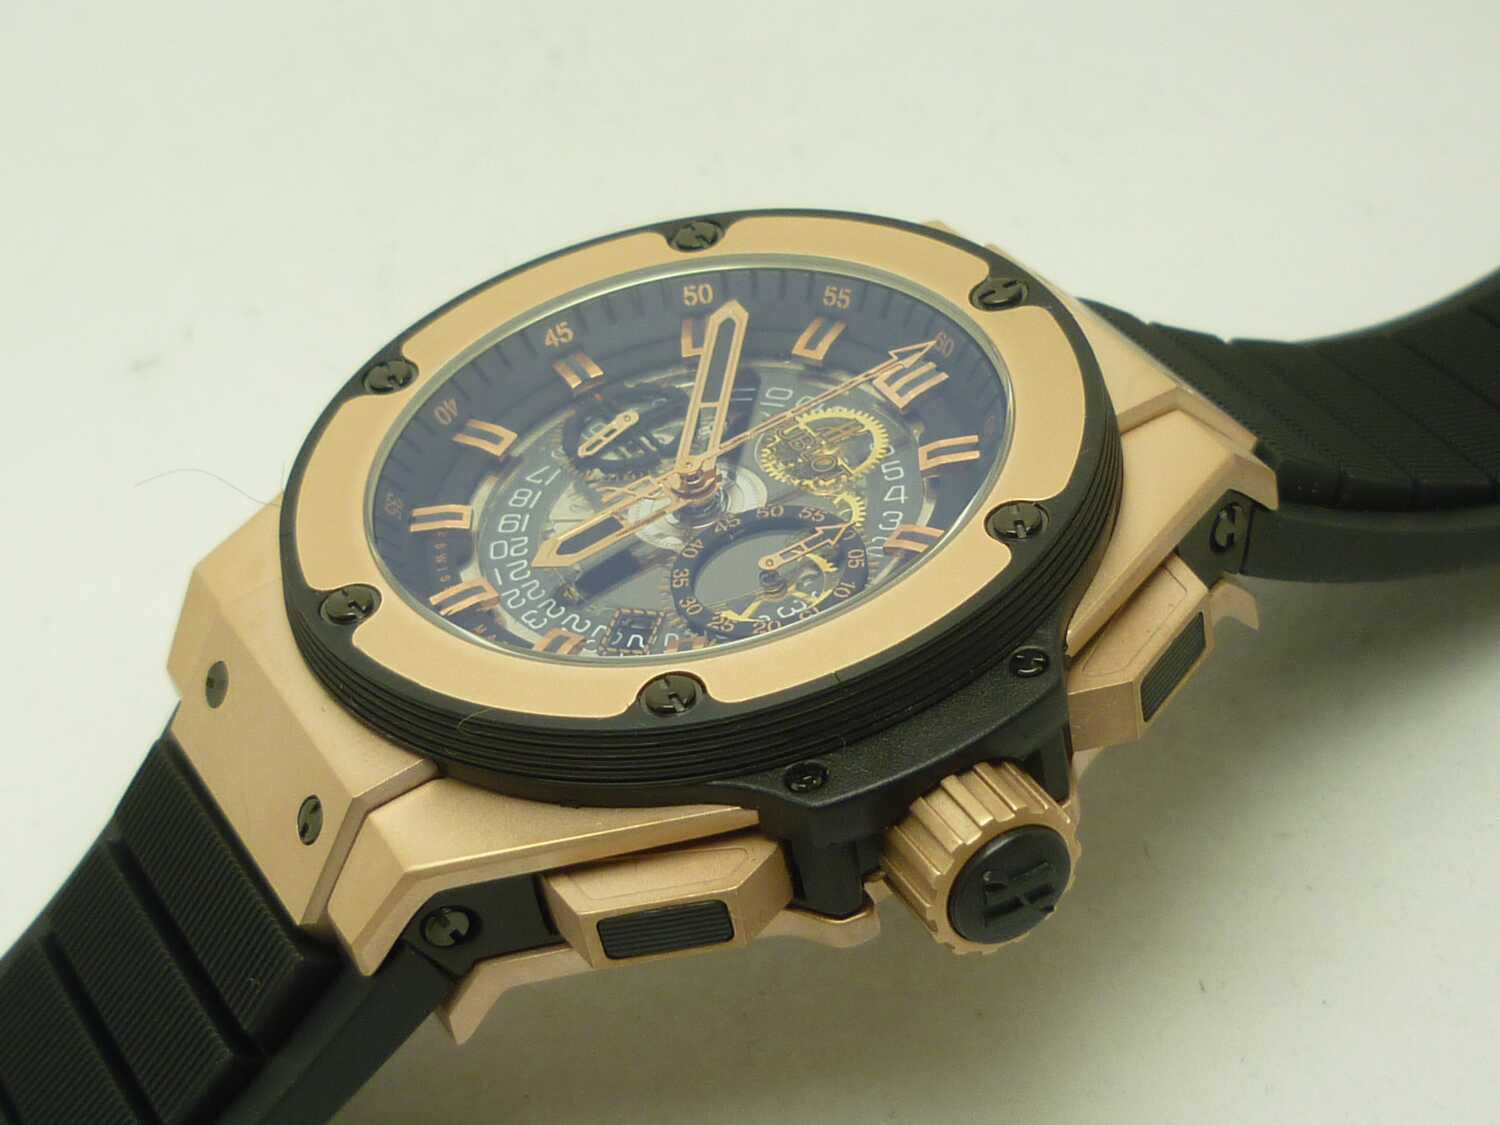 Replica Hublot Unico Rose Gold